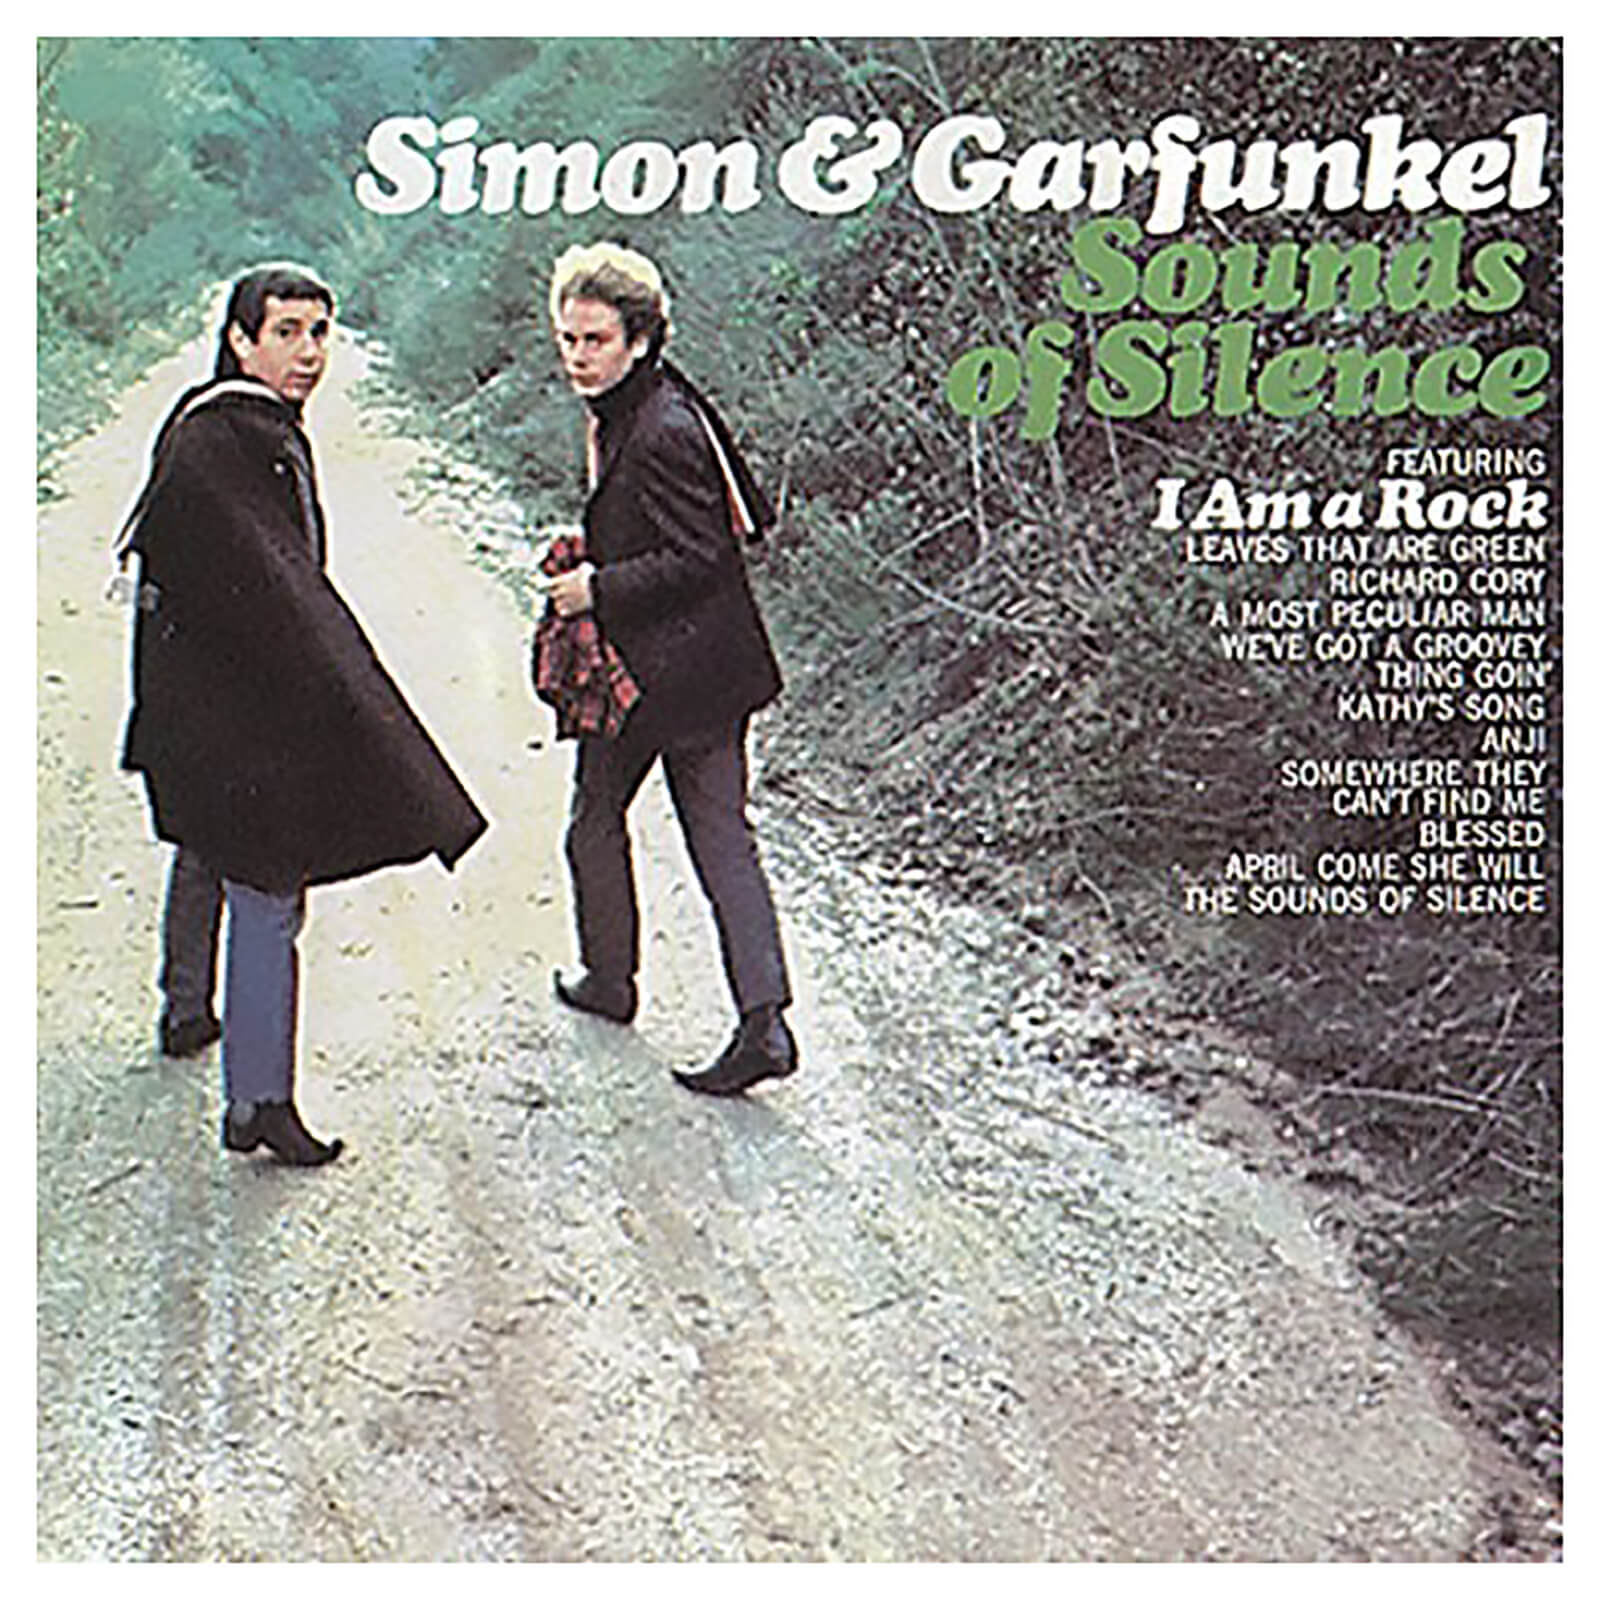 Simon & Garfunkel - Sounds Of Silence - Vinyl